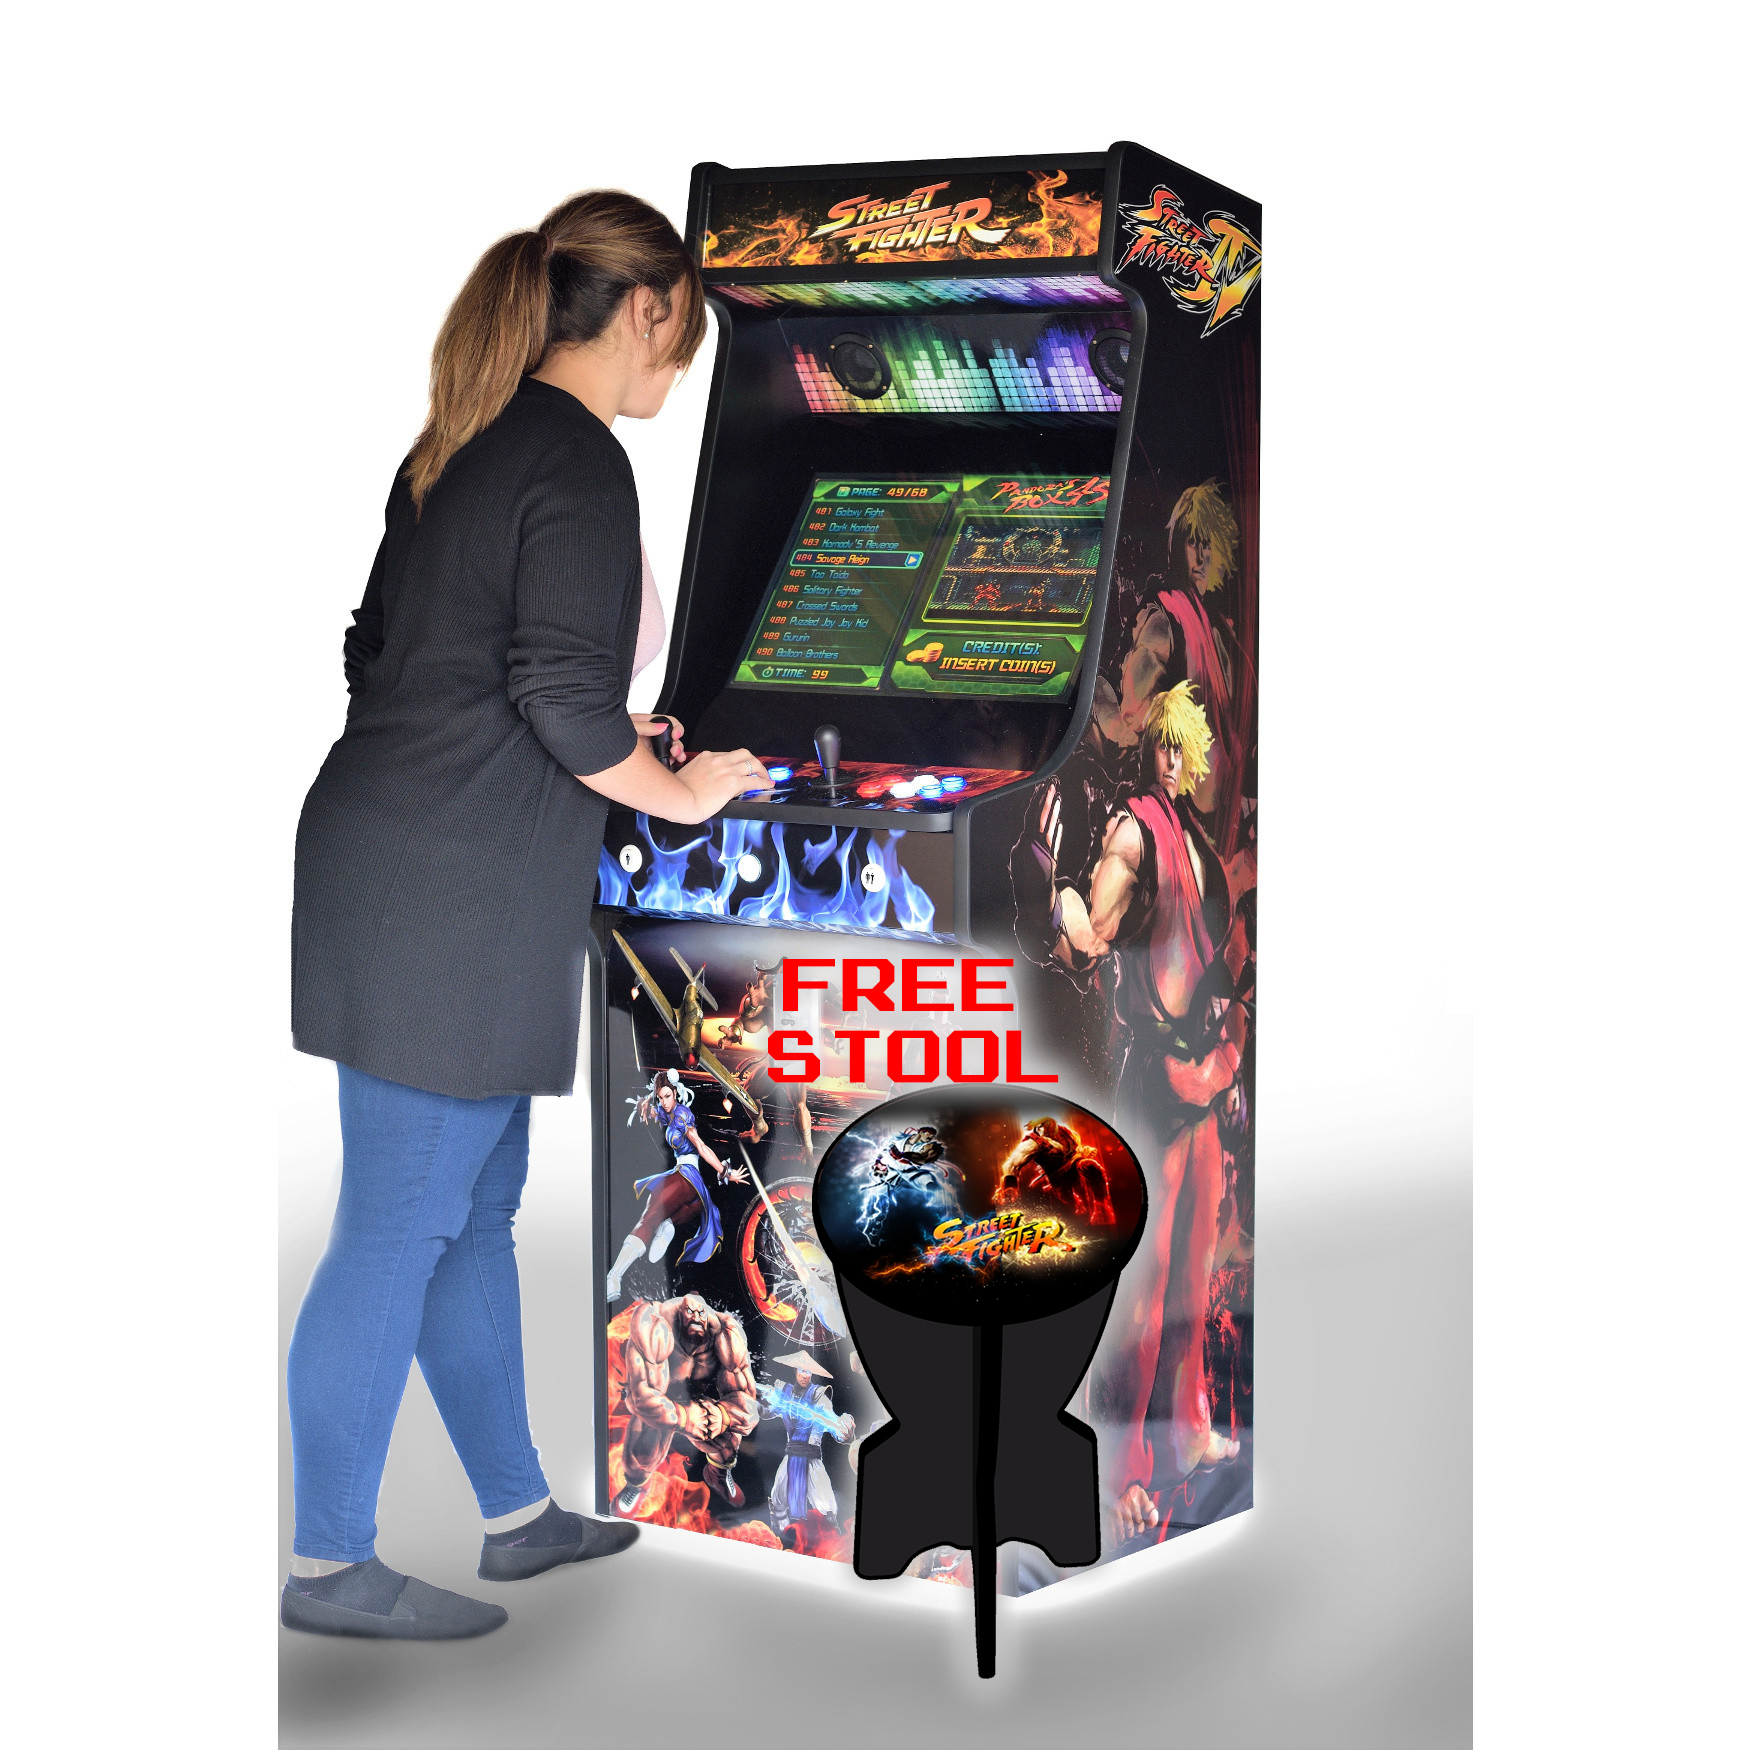 Classic-Upright-Arcade-Machine-Street-Fighter-Theme-With-illuminated-Buttons-and-Coin-Slot-Playing-free-stool